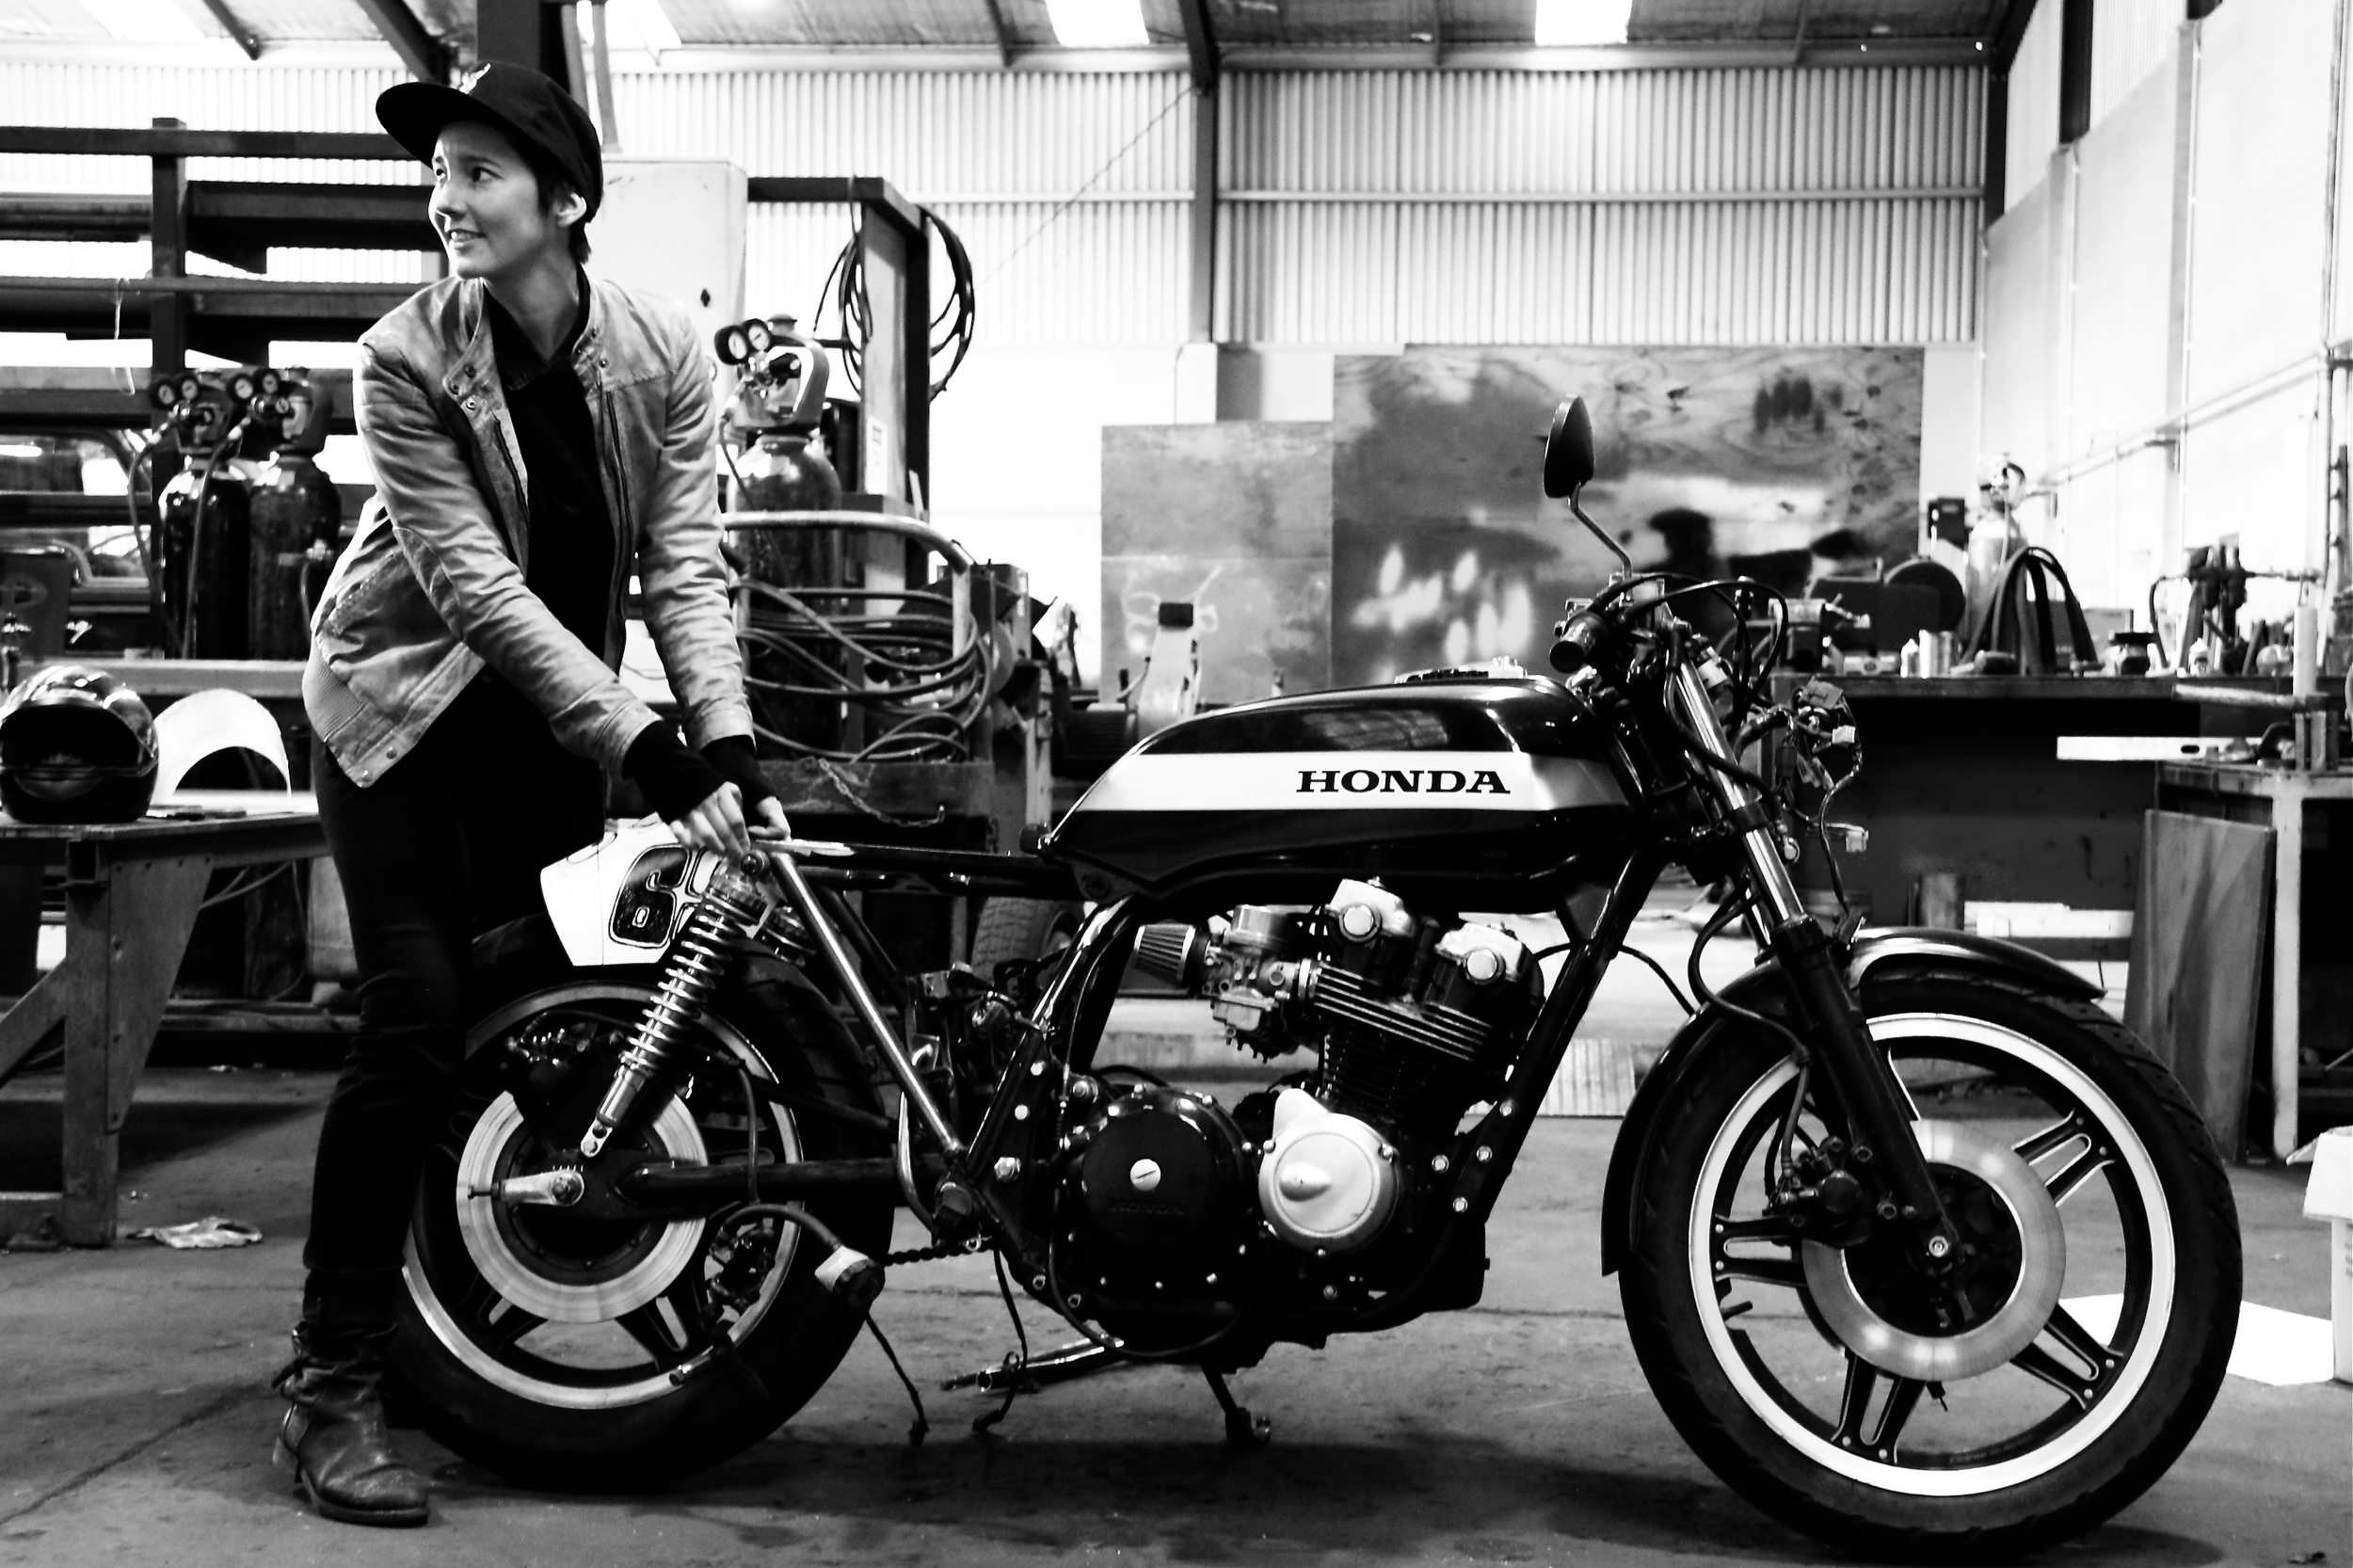 """Rosie is currently in the process of following her dreams with insuppressible thirst. She rides a 1977 Honda CB550four Super Sport and is building a 1982 Honda CB750four with the help of her engineer husband Dan. She's called """"Bogan Audrey,"""" and it is a rat racer style café racer. Rosie's inspiration for this dream machine: Audrey Hepburn in a little black dress. Rosie grew up around bikes and started out on dirt/motocross bikes. """"My first race bike was at Yamaha pw50 at age four, I progressed through to come third in NZ for junior women and then had a big accident on my Honda CR125 (two-stroke) where I broke both my wrists at the same time."""" Rosie's still got plans for the track and her big dream is to build her house around her workshop. She's working on her welding skills like a mad women and has all kinds of ideas for builds. He favorite kind of therapy is working on one of her many projects or going fast. See if you can catch her!"""